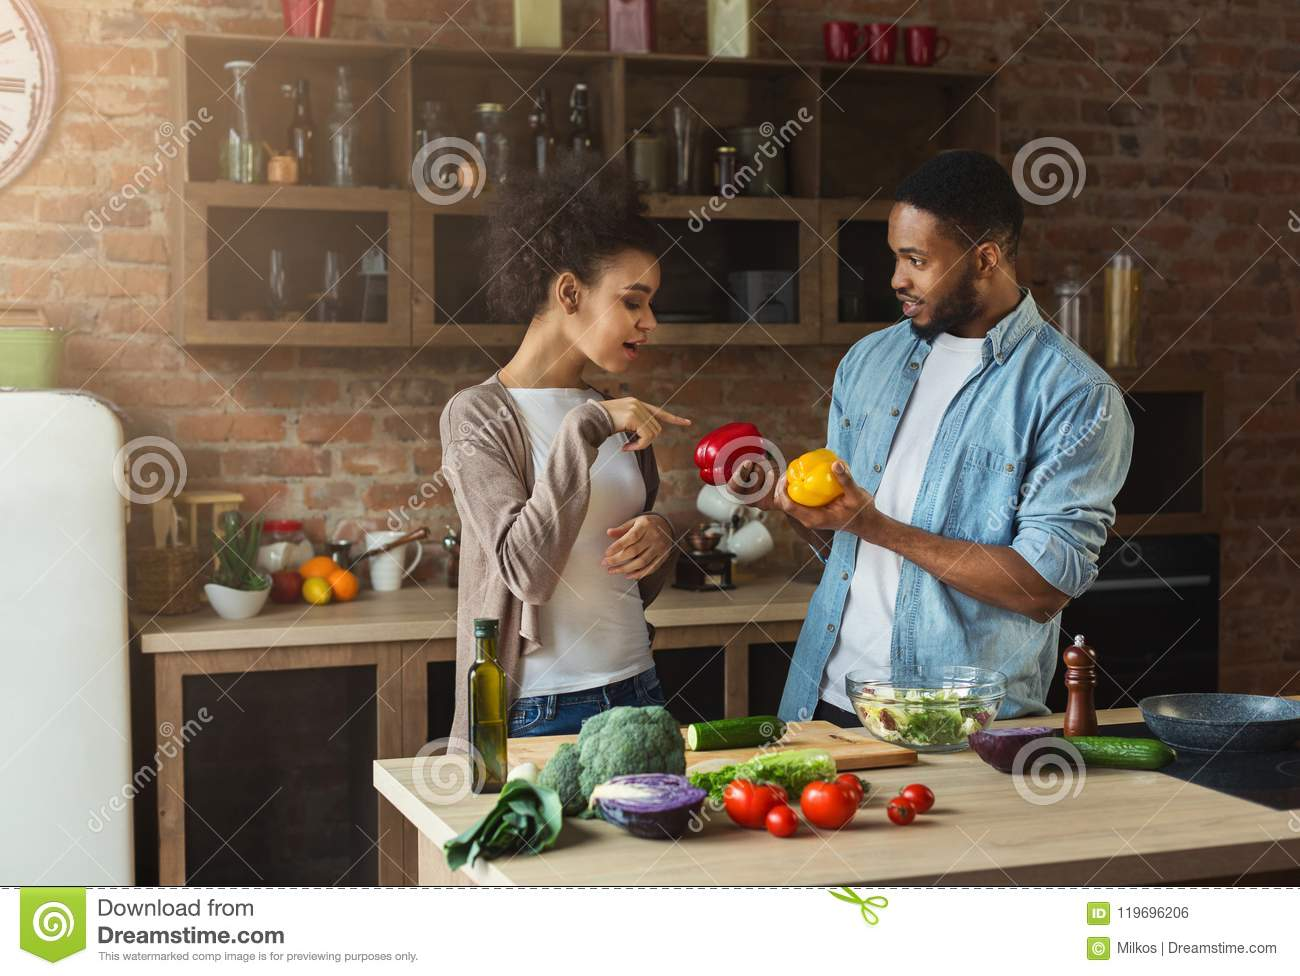 Download African-american Couple Preparing Healthy Salad Stock Photo - Image of home, fresh: 119696206